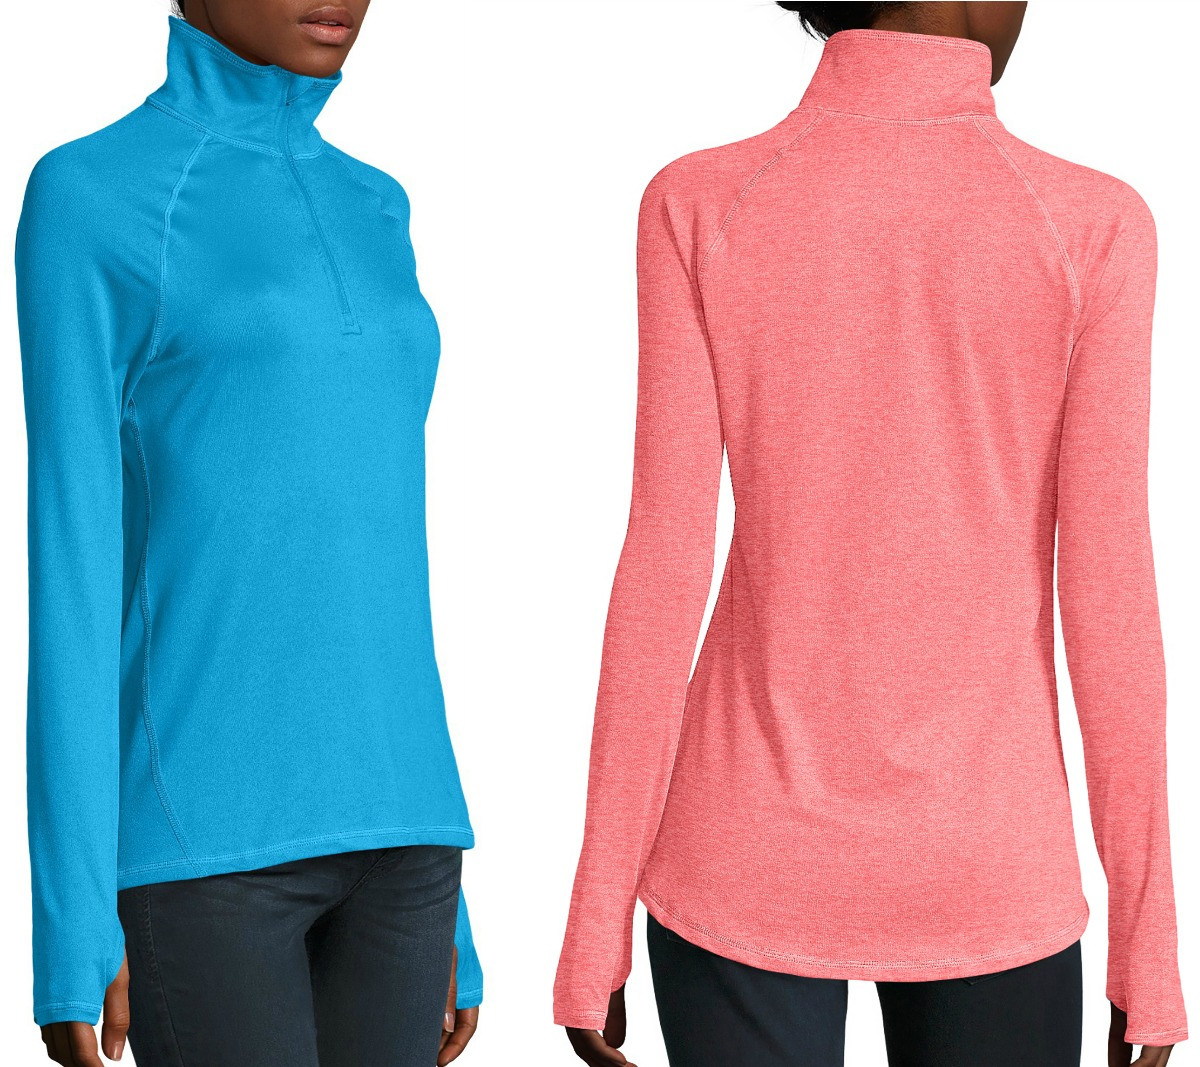 Women wearing hanes jackets in blue and pink colors